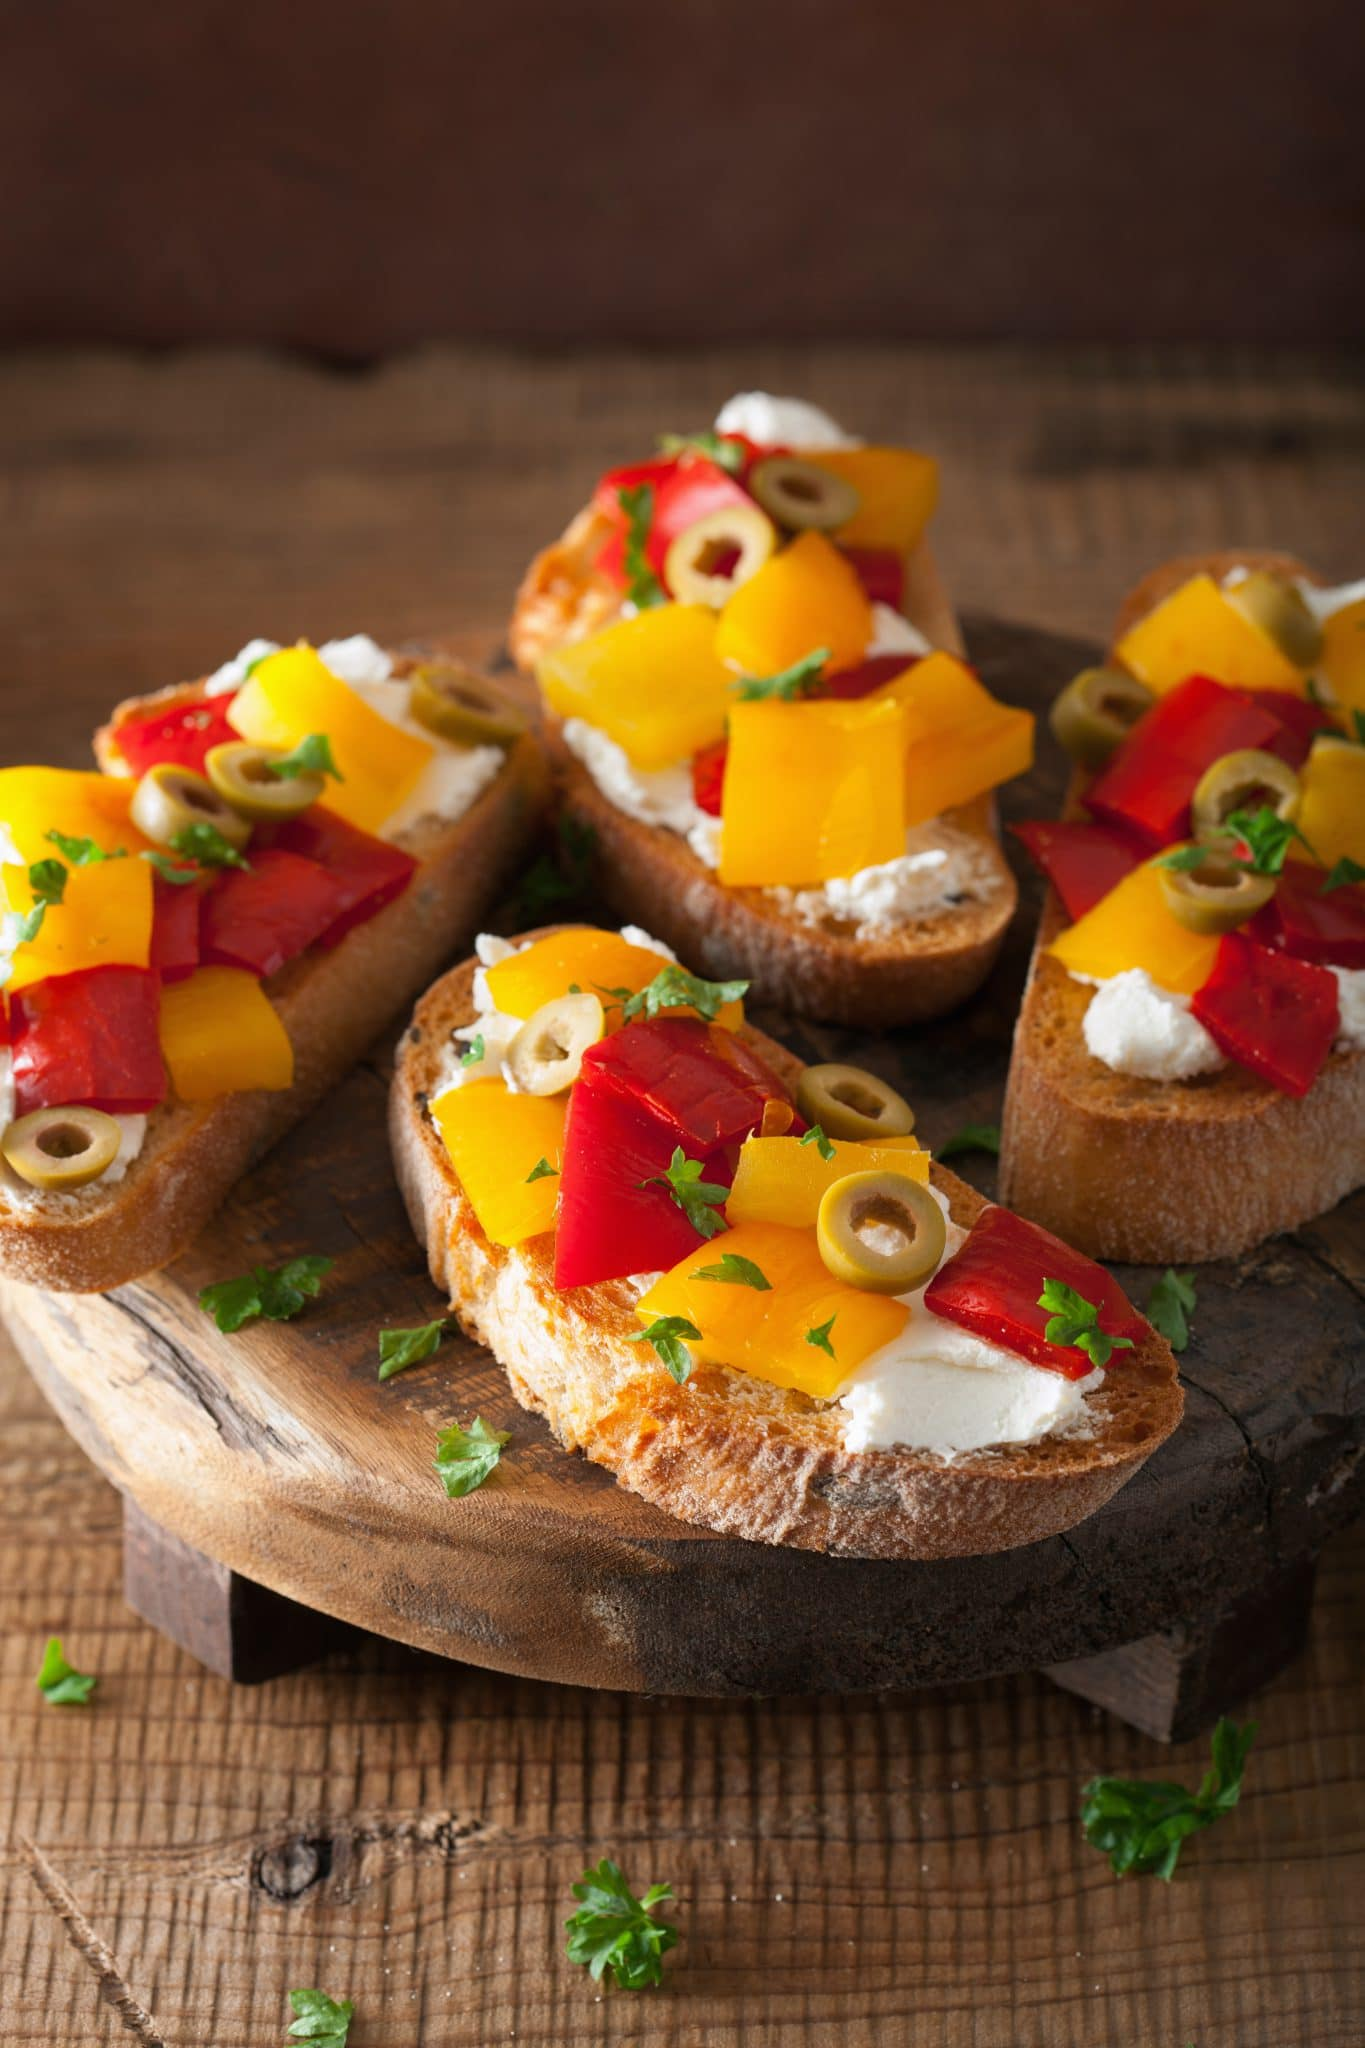 italian-bruschetta-with-peppers-goat-cheese-PHMHR7U